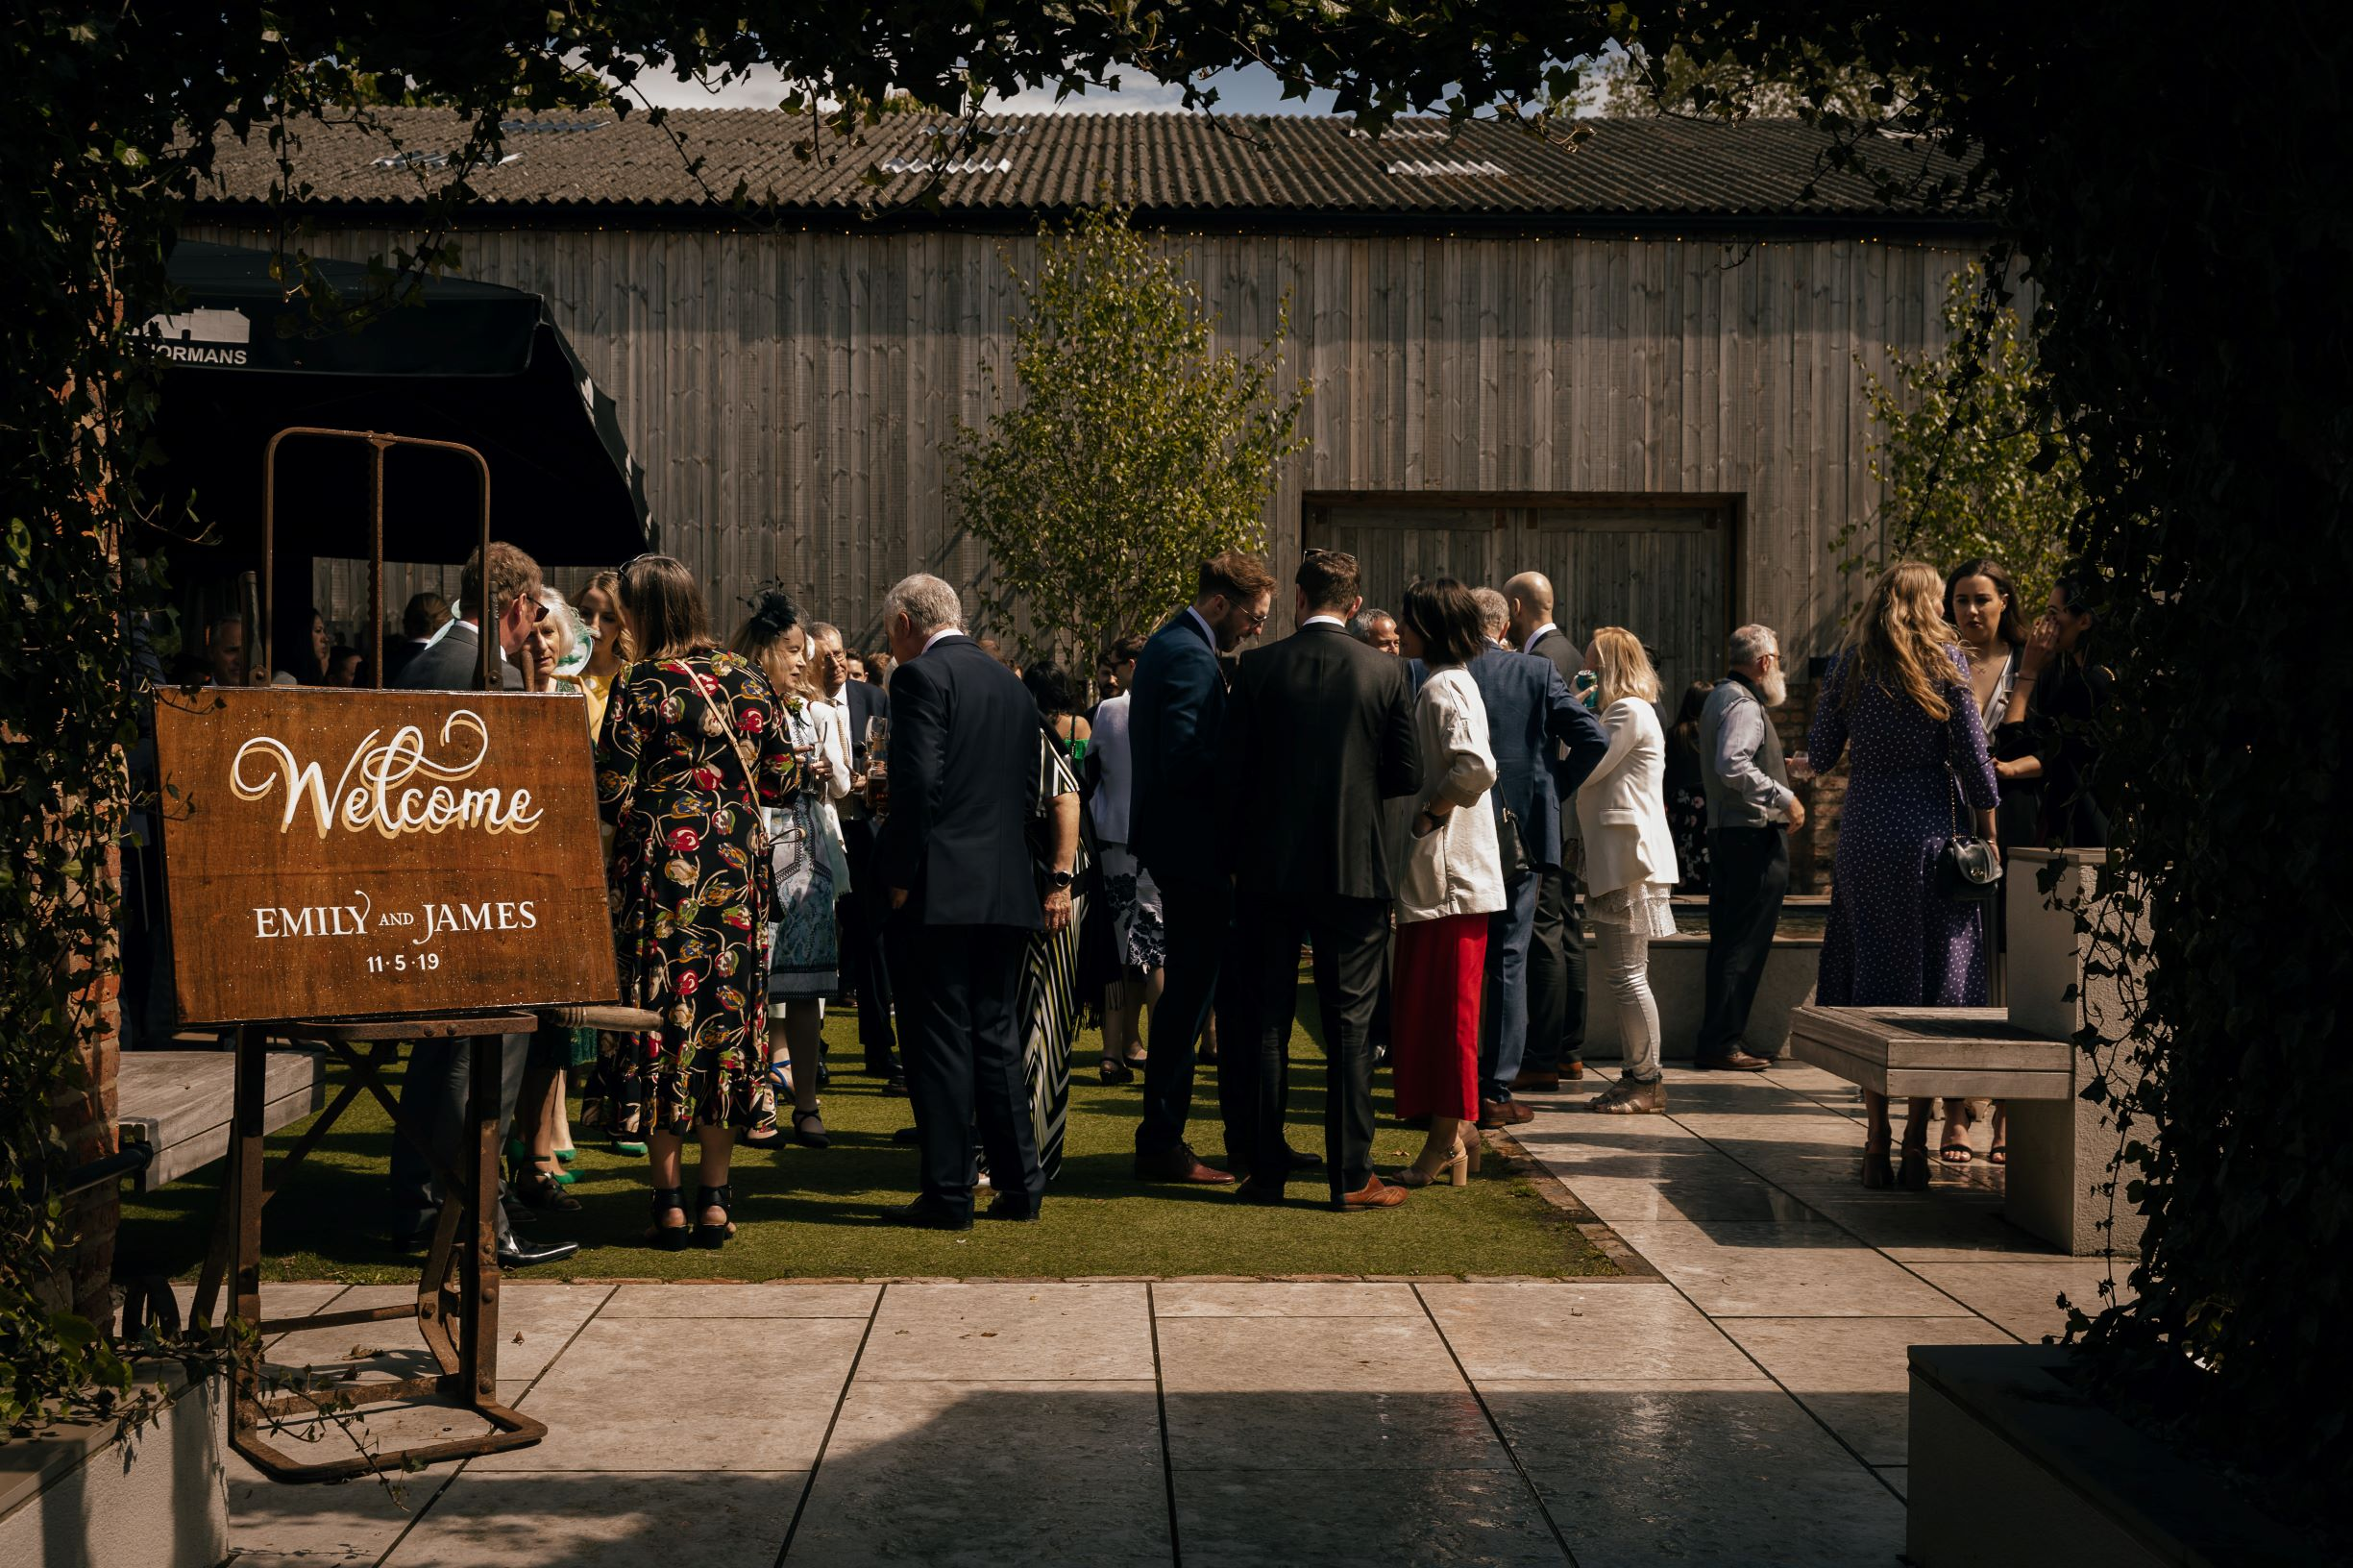 The-Normans-Wedding-Leeds--Emily-James-Jules-Barron-2019-102.JPG